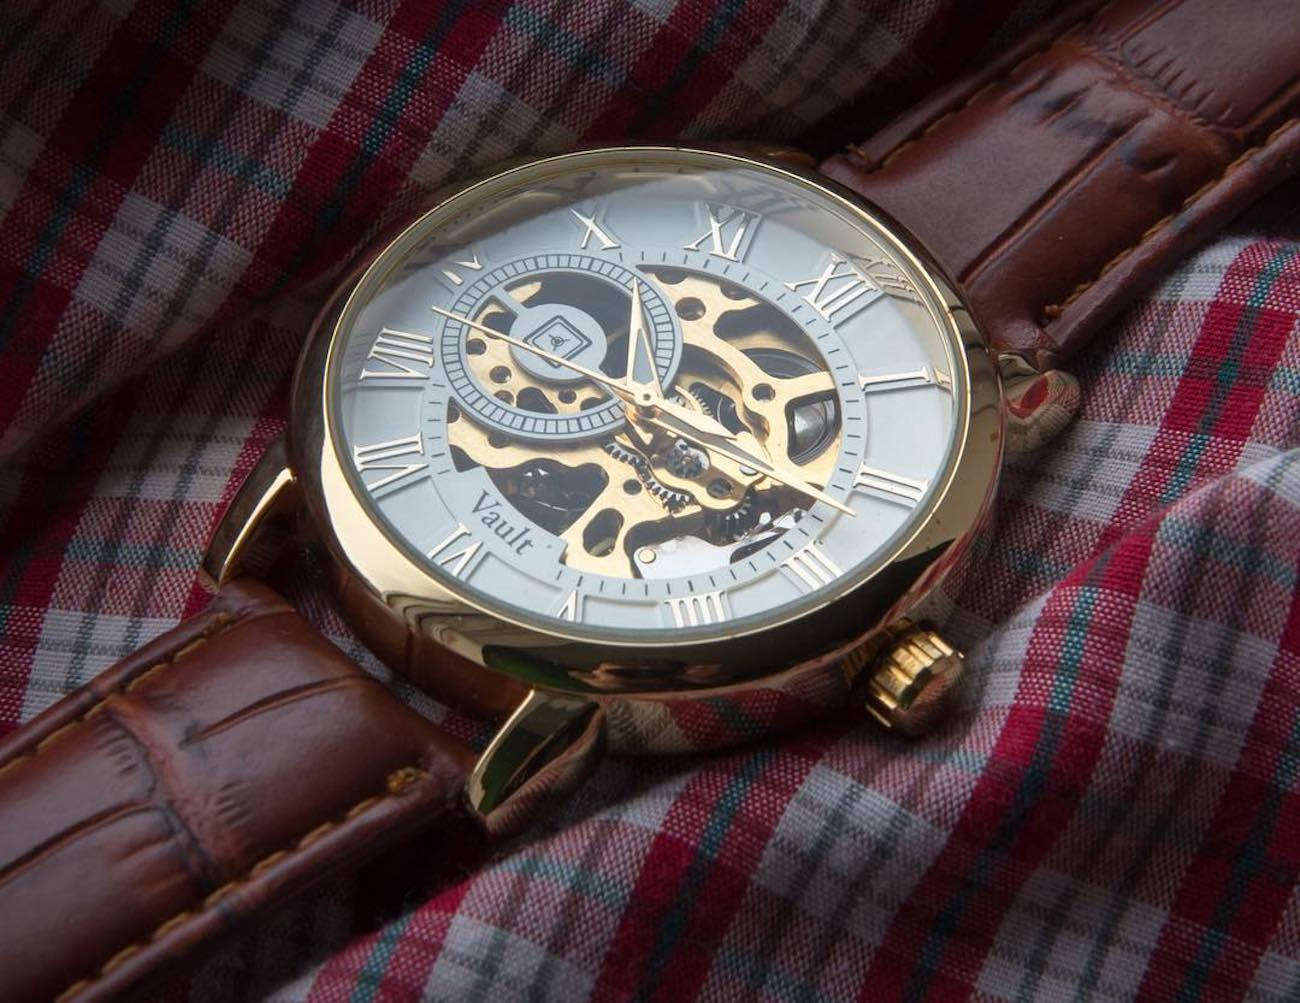 Vault 2017 Luxury Men's Watches